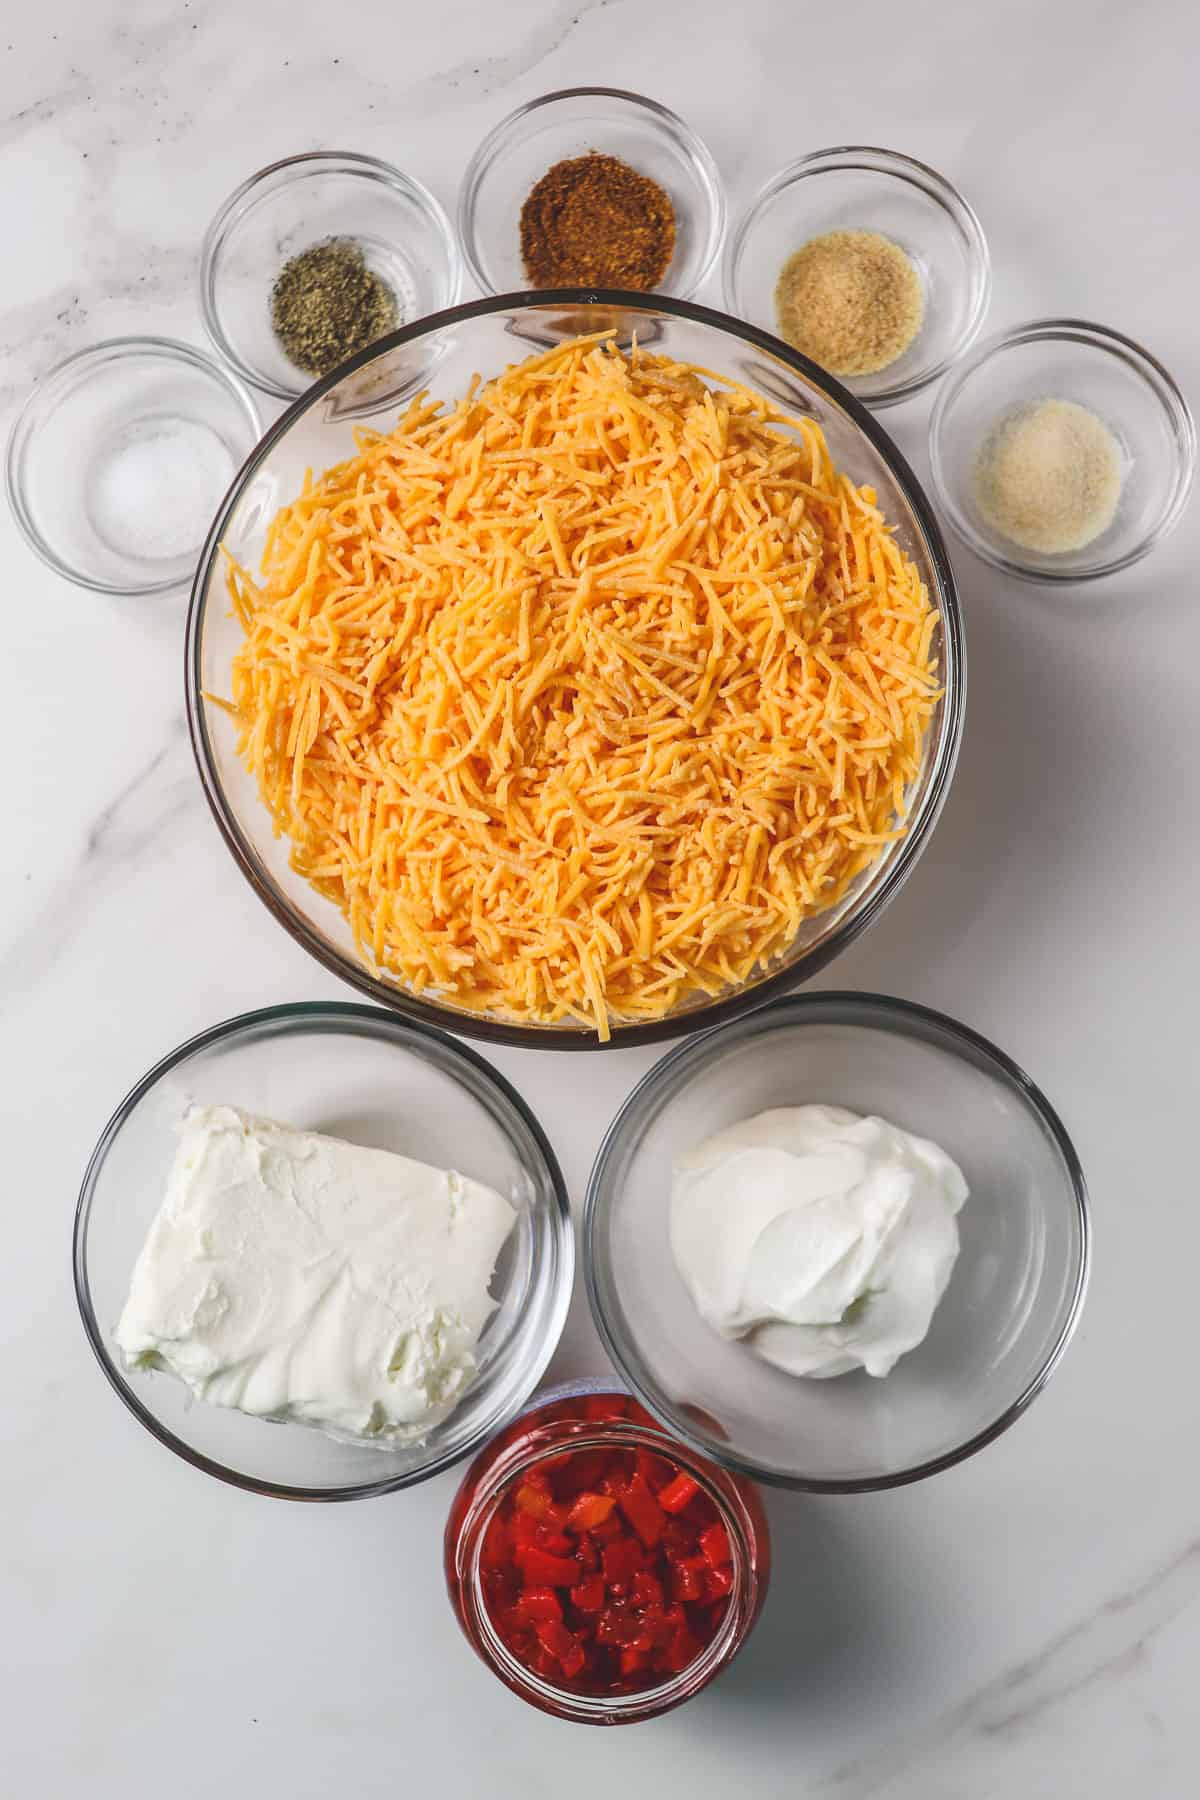 ingredients for no mayo pimento cheese